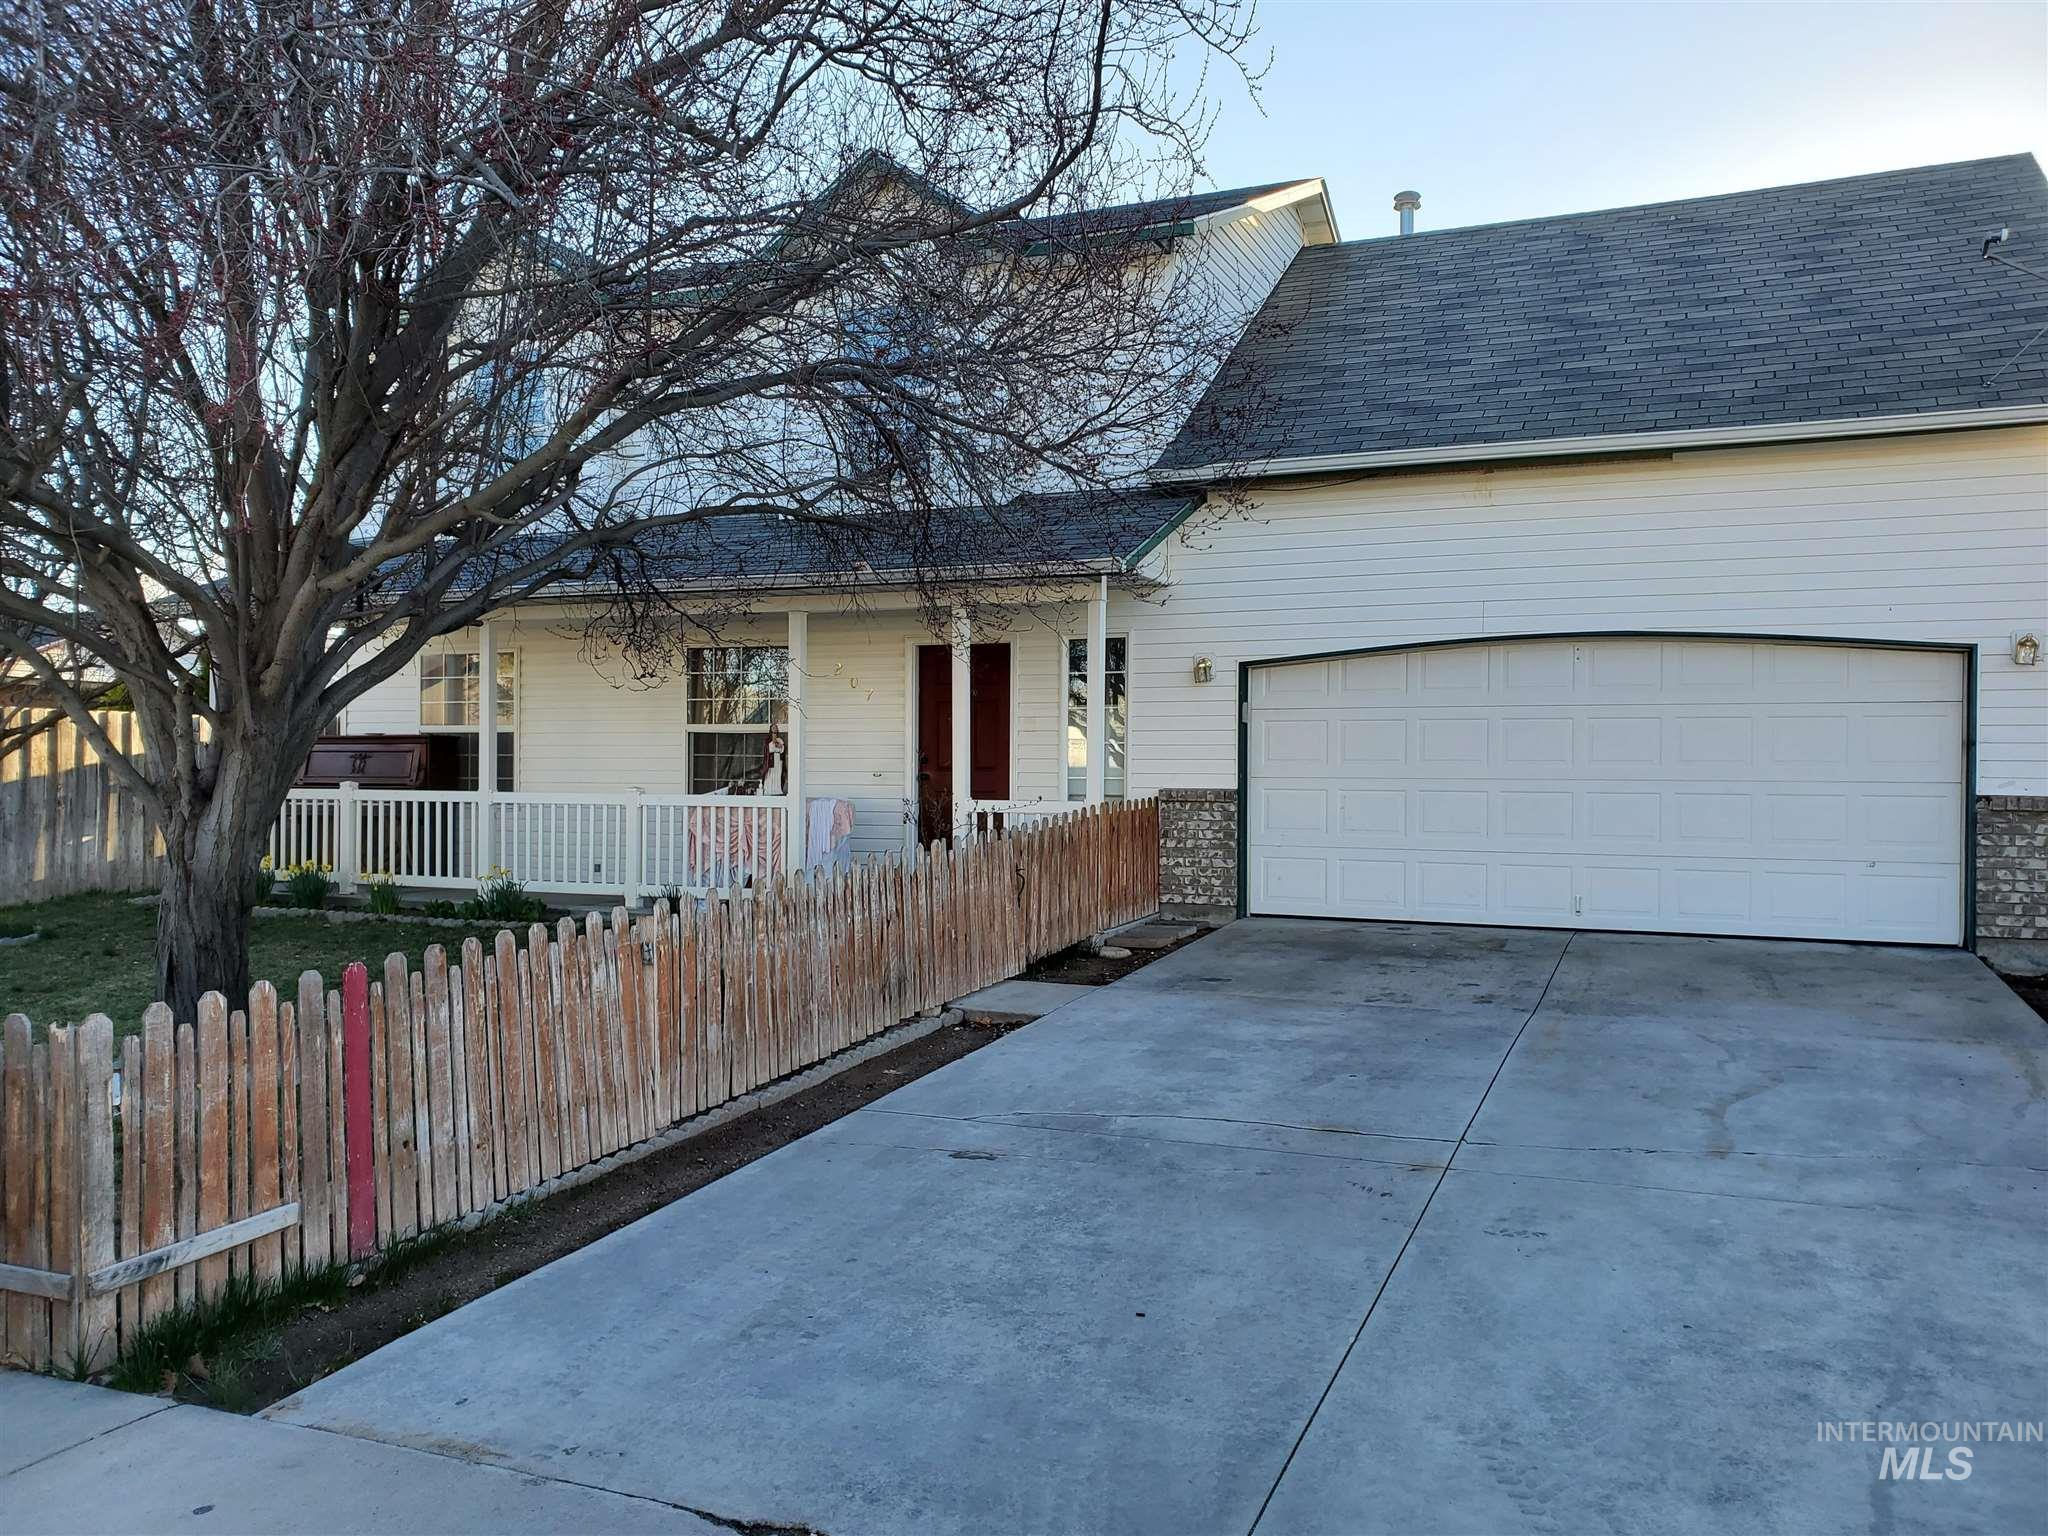 207 N Turtle Dove Way Property Photo - Nampa, ID real estate listing